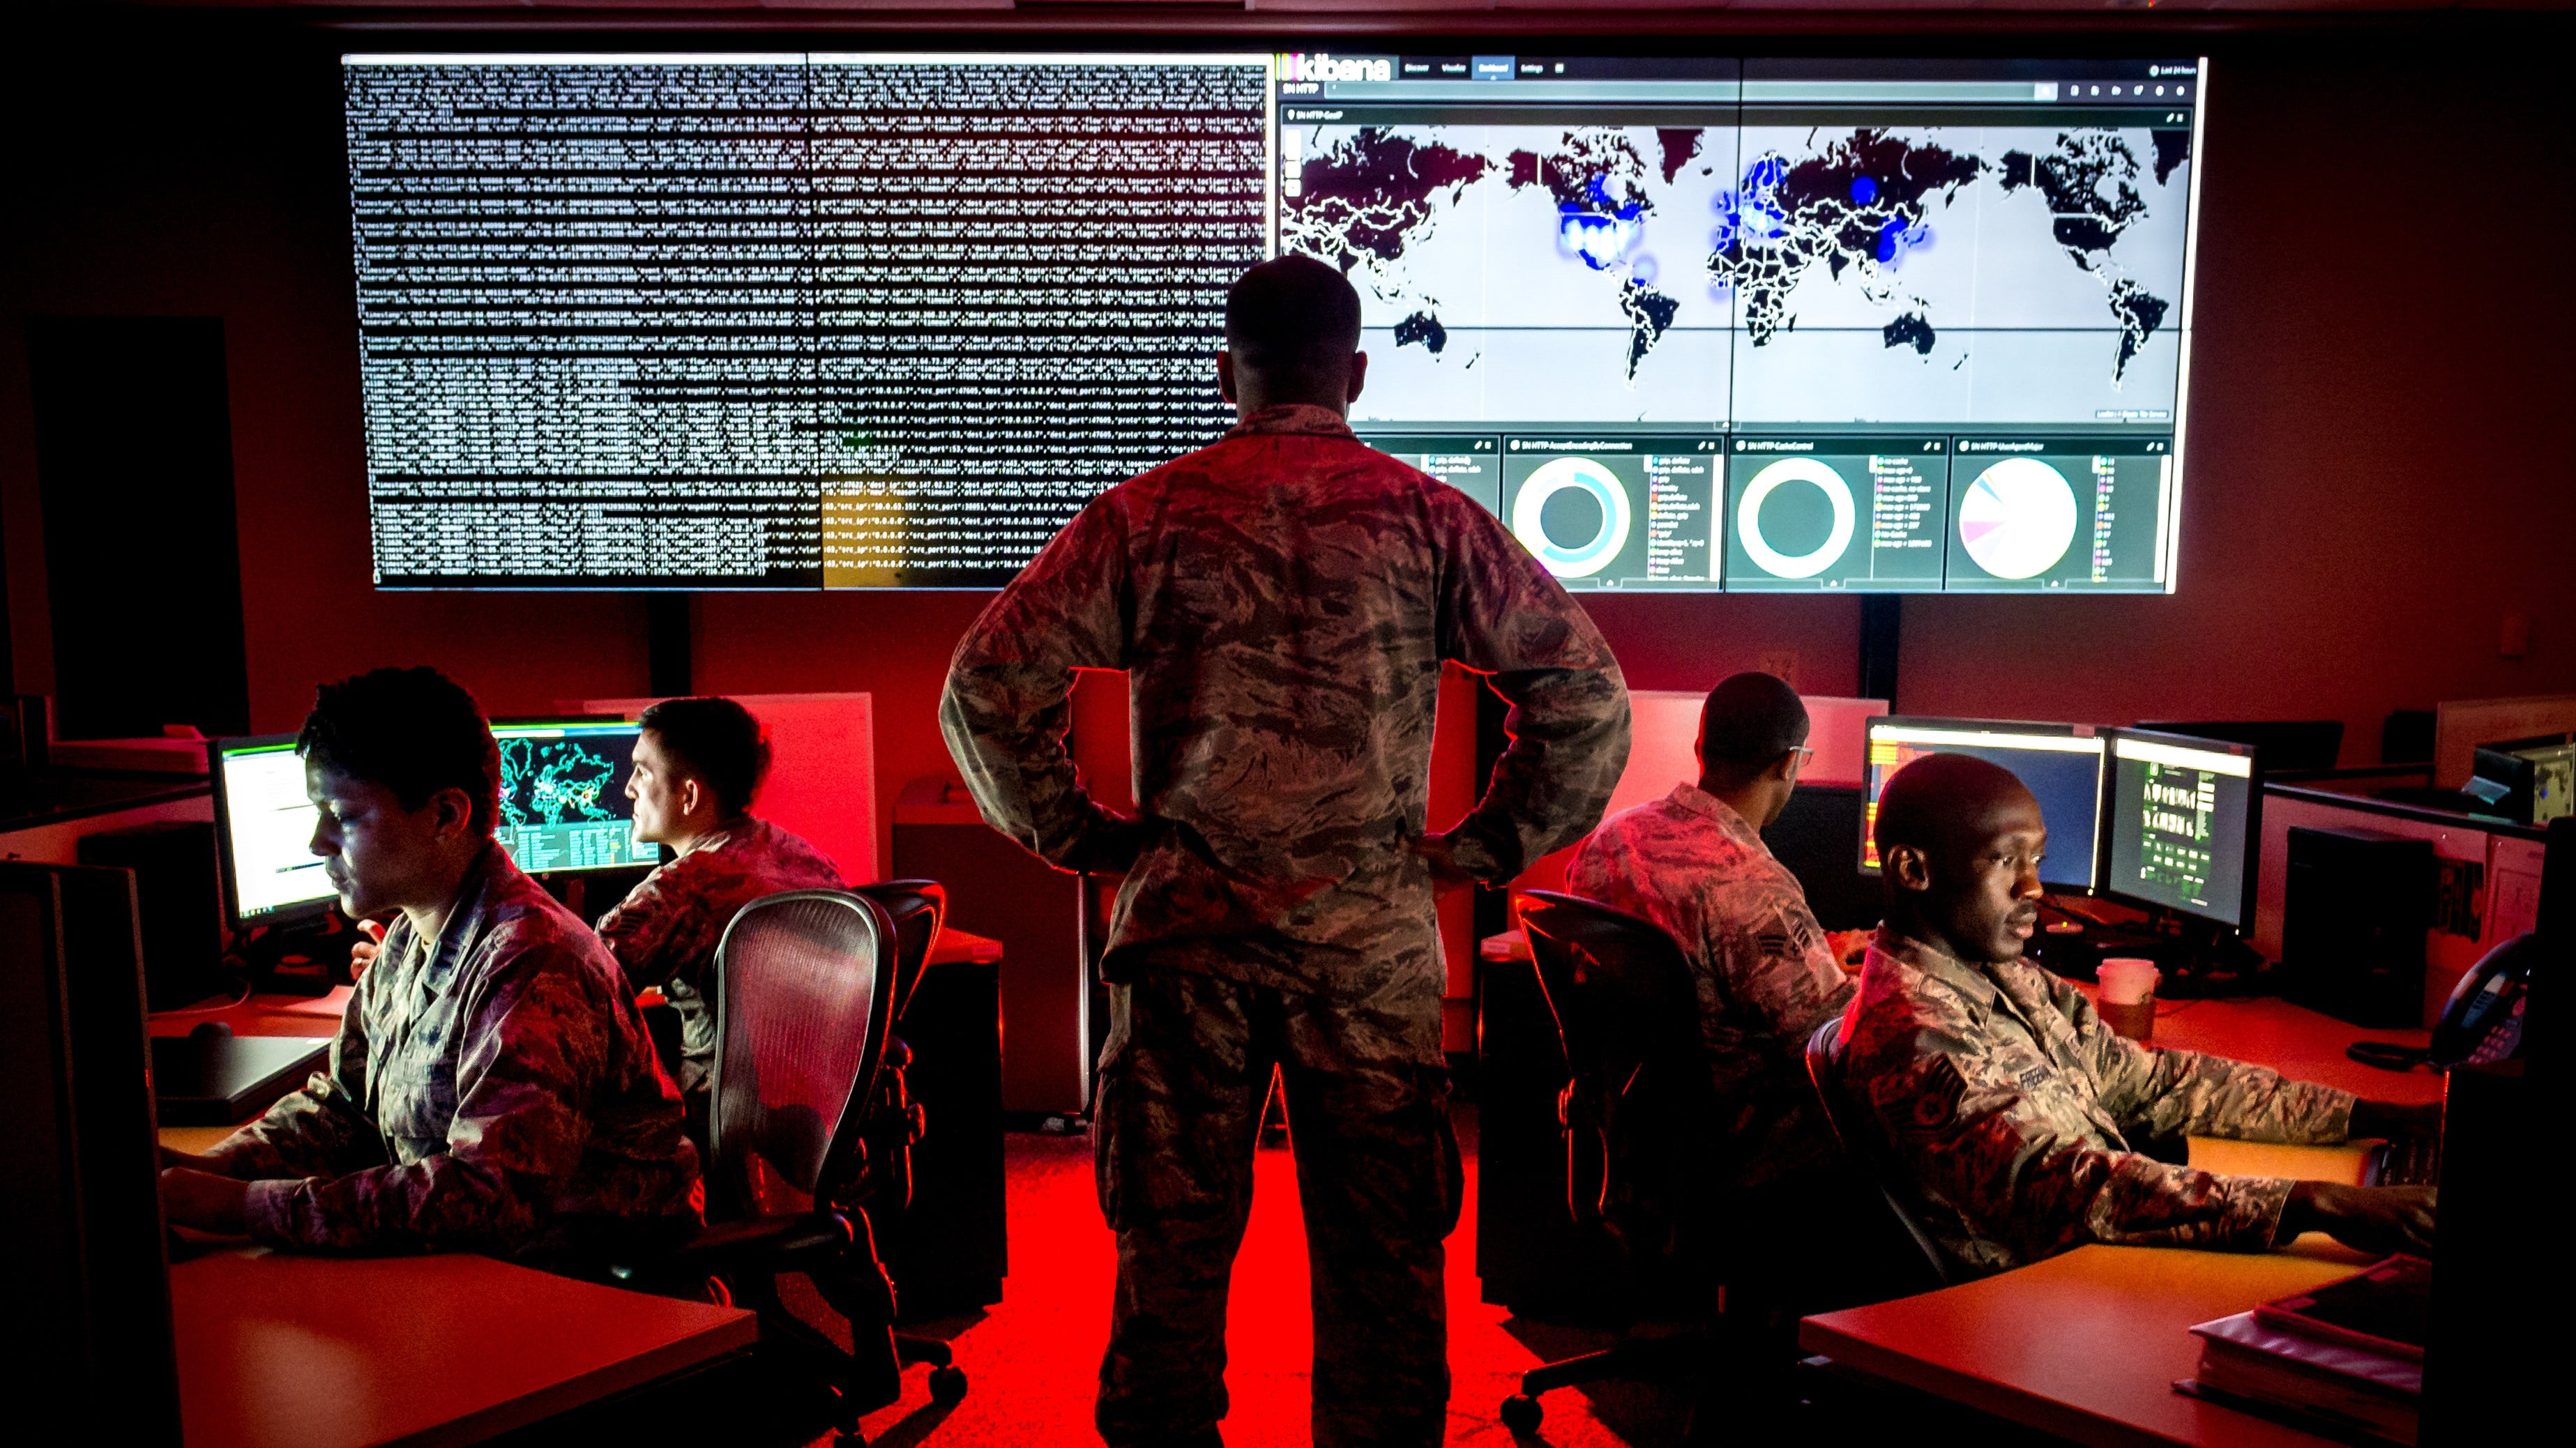 Command and control: A fight for the future of government hacking